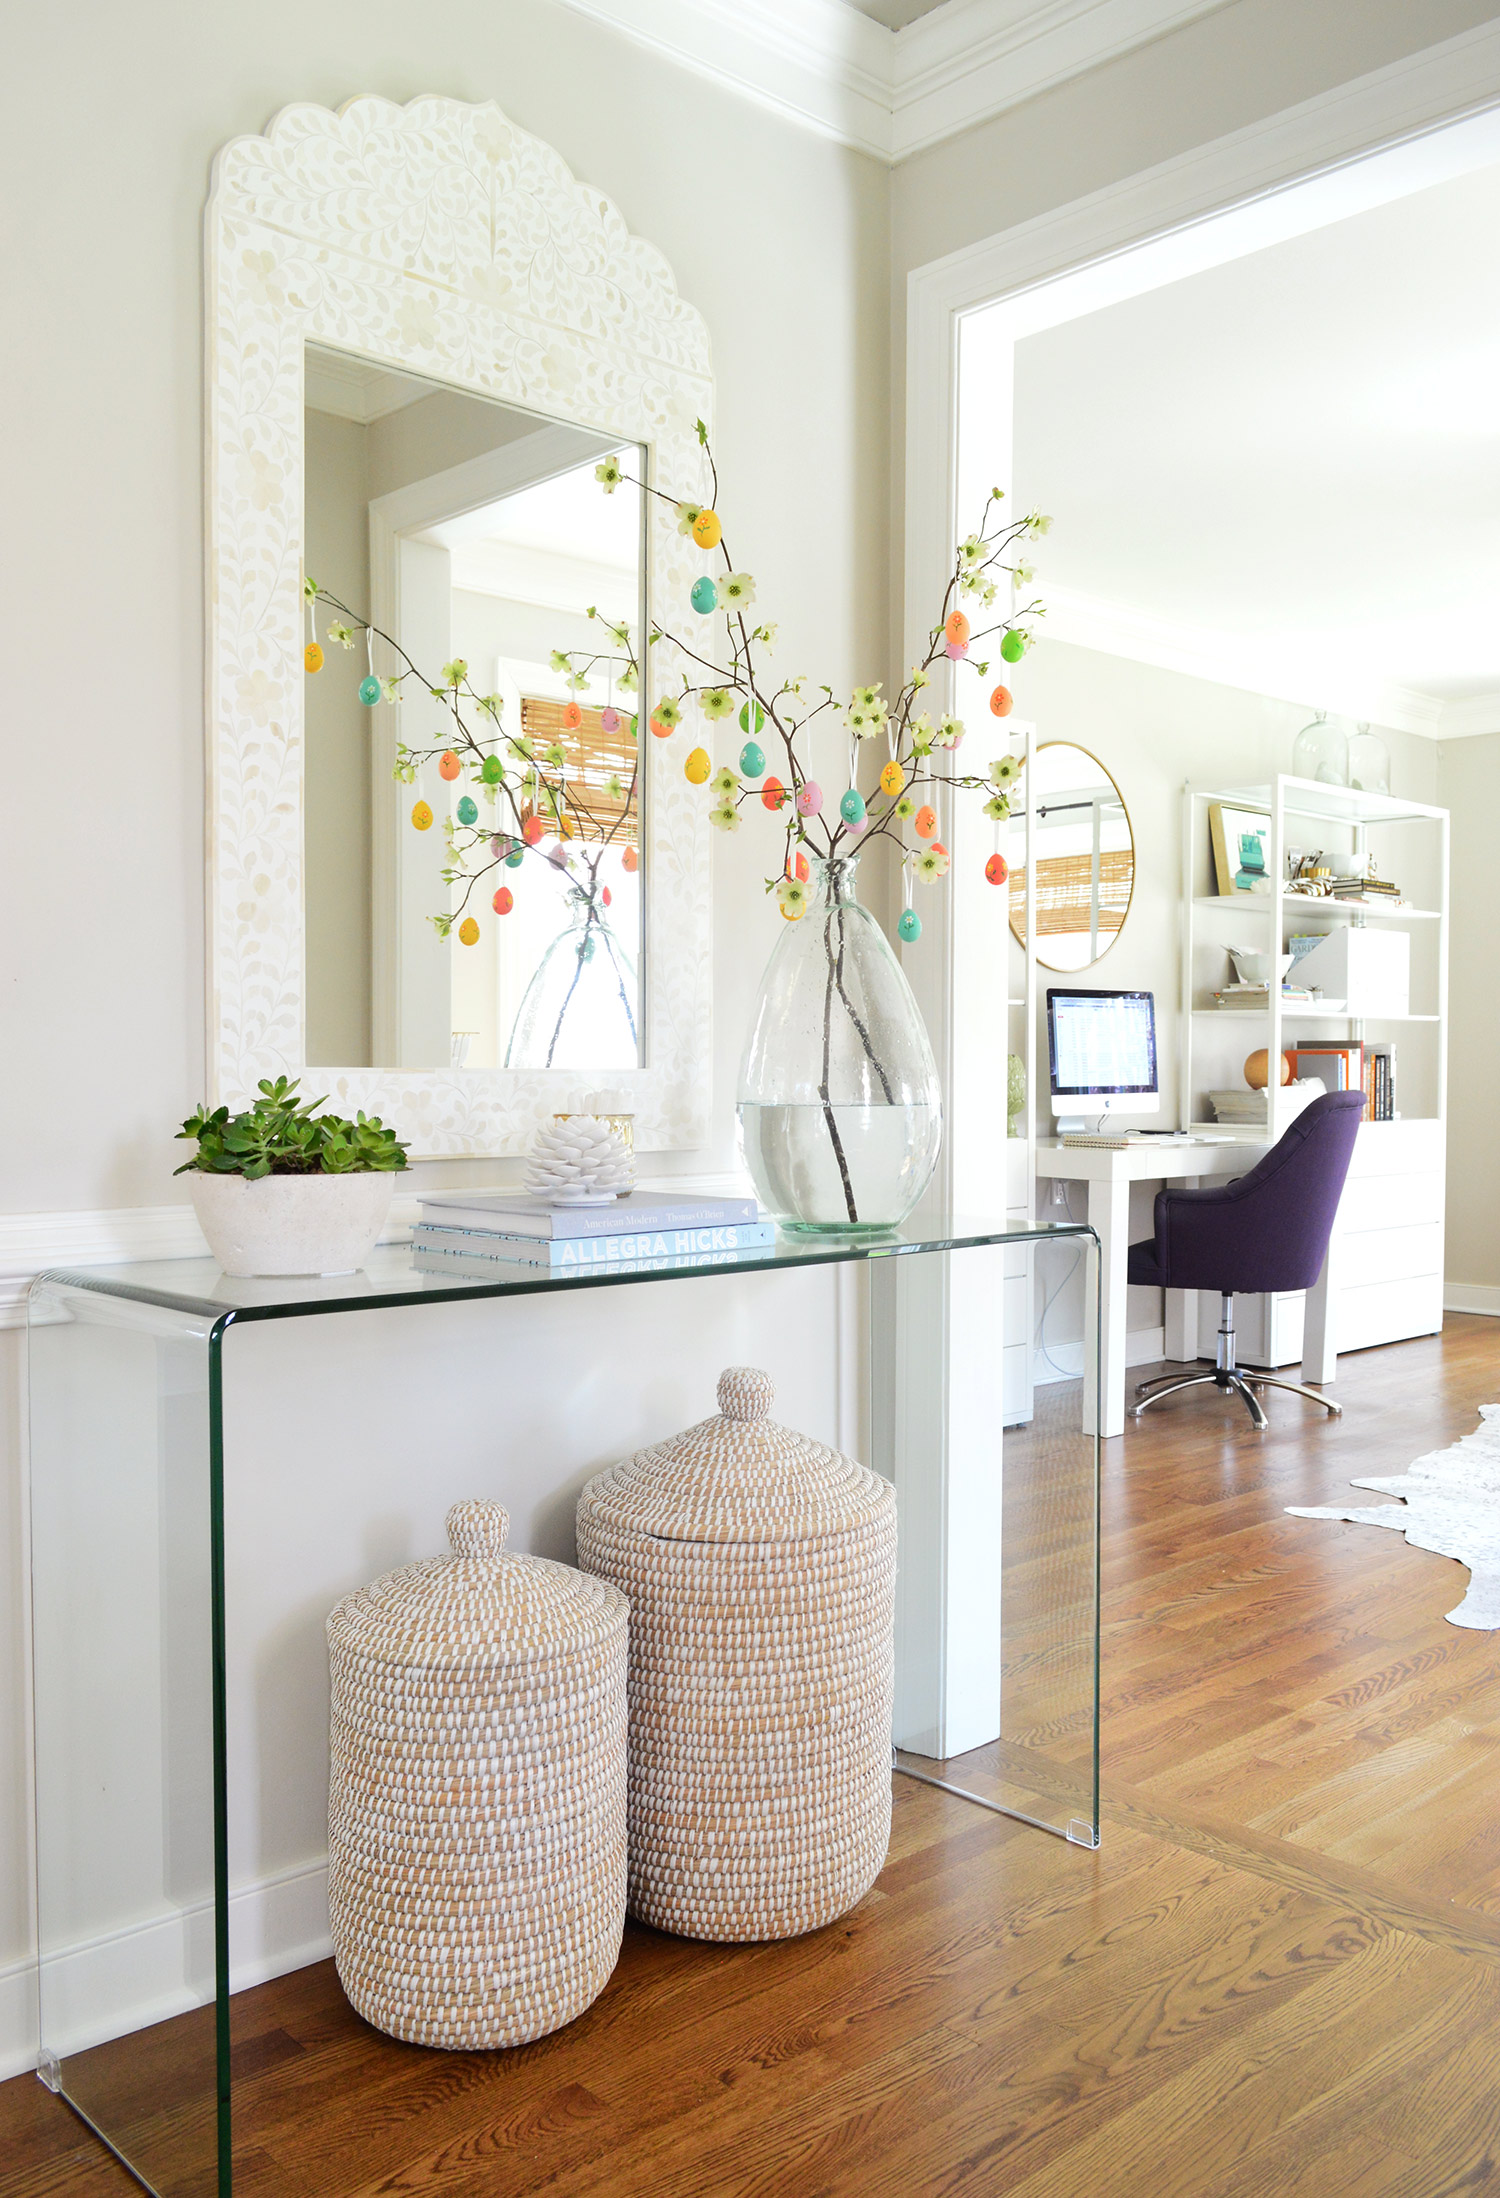 Easter-Egg-tree-in-foyer-with-acrylic-console-table-and-inlay-mirror-with-decorative-baskets-underne-wallpaper-wp4004475-1